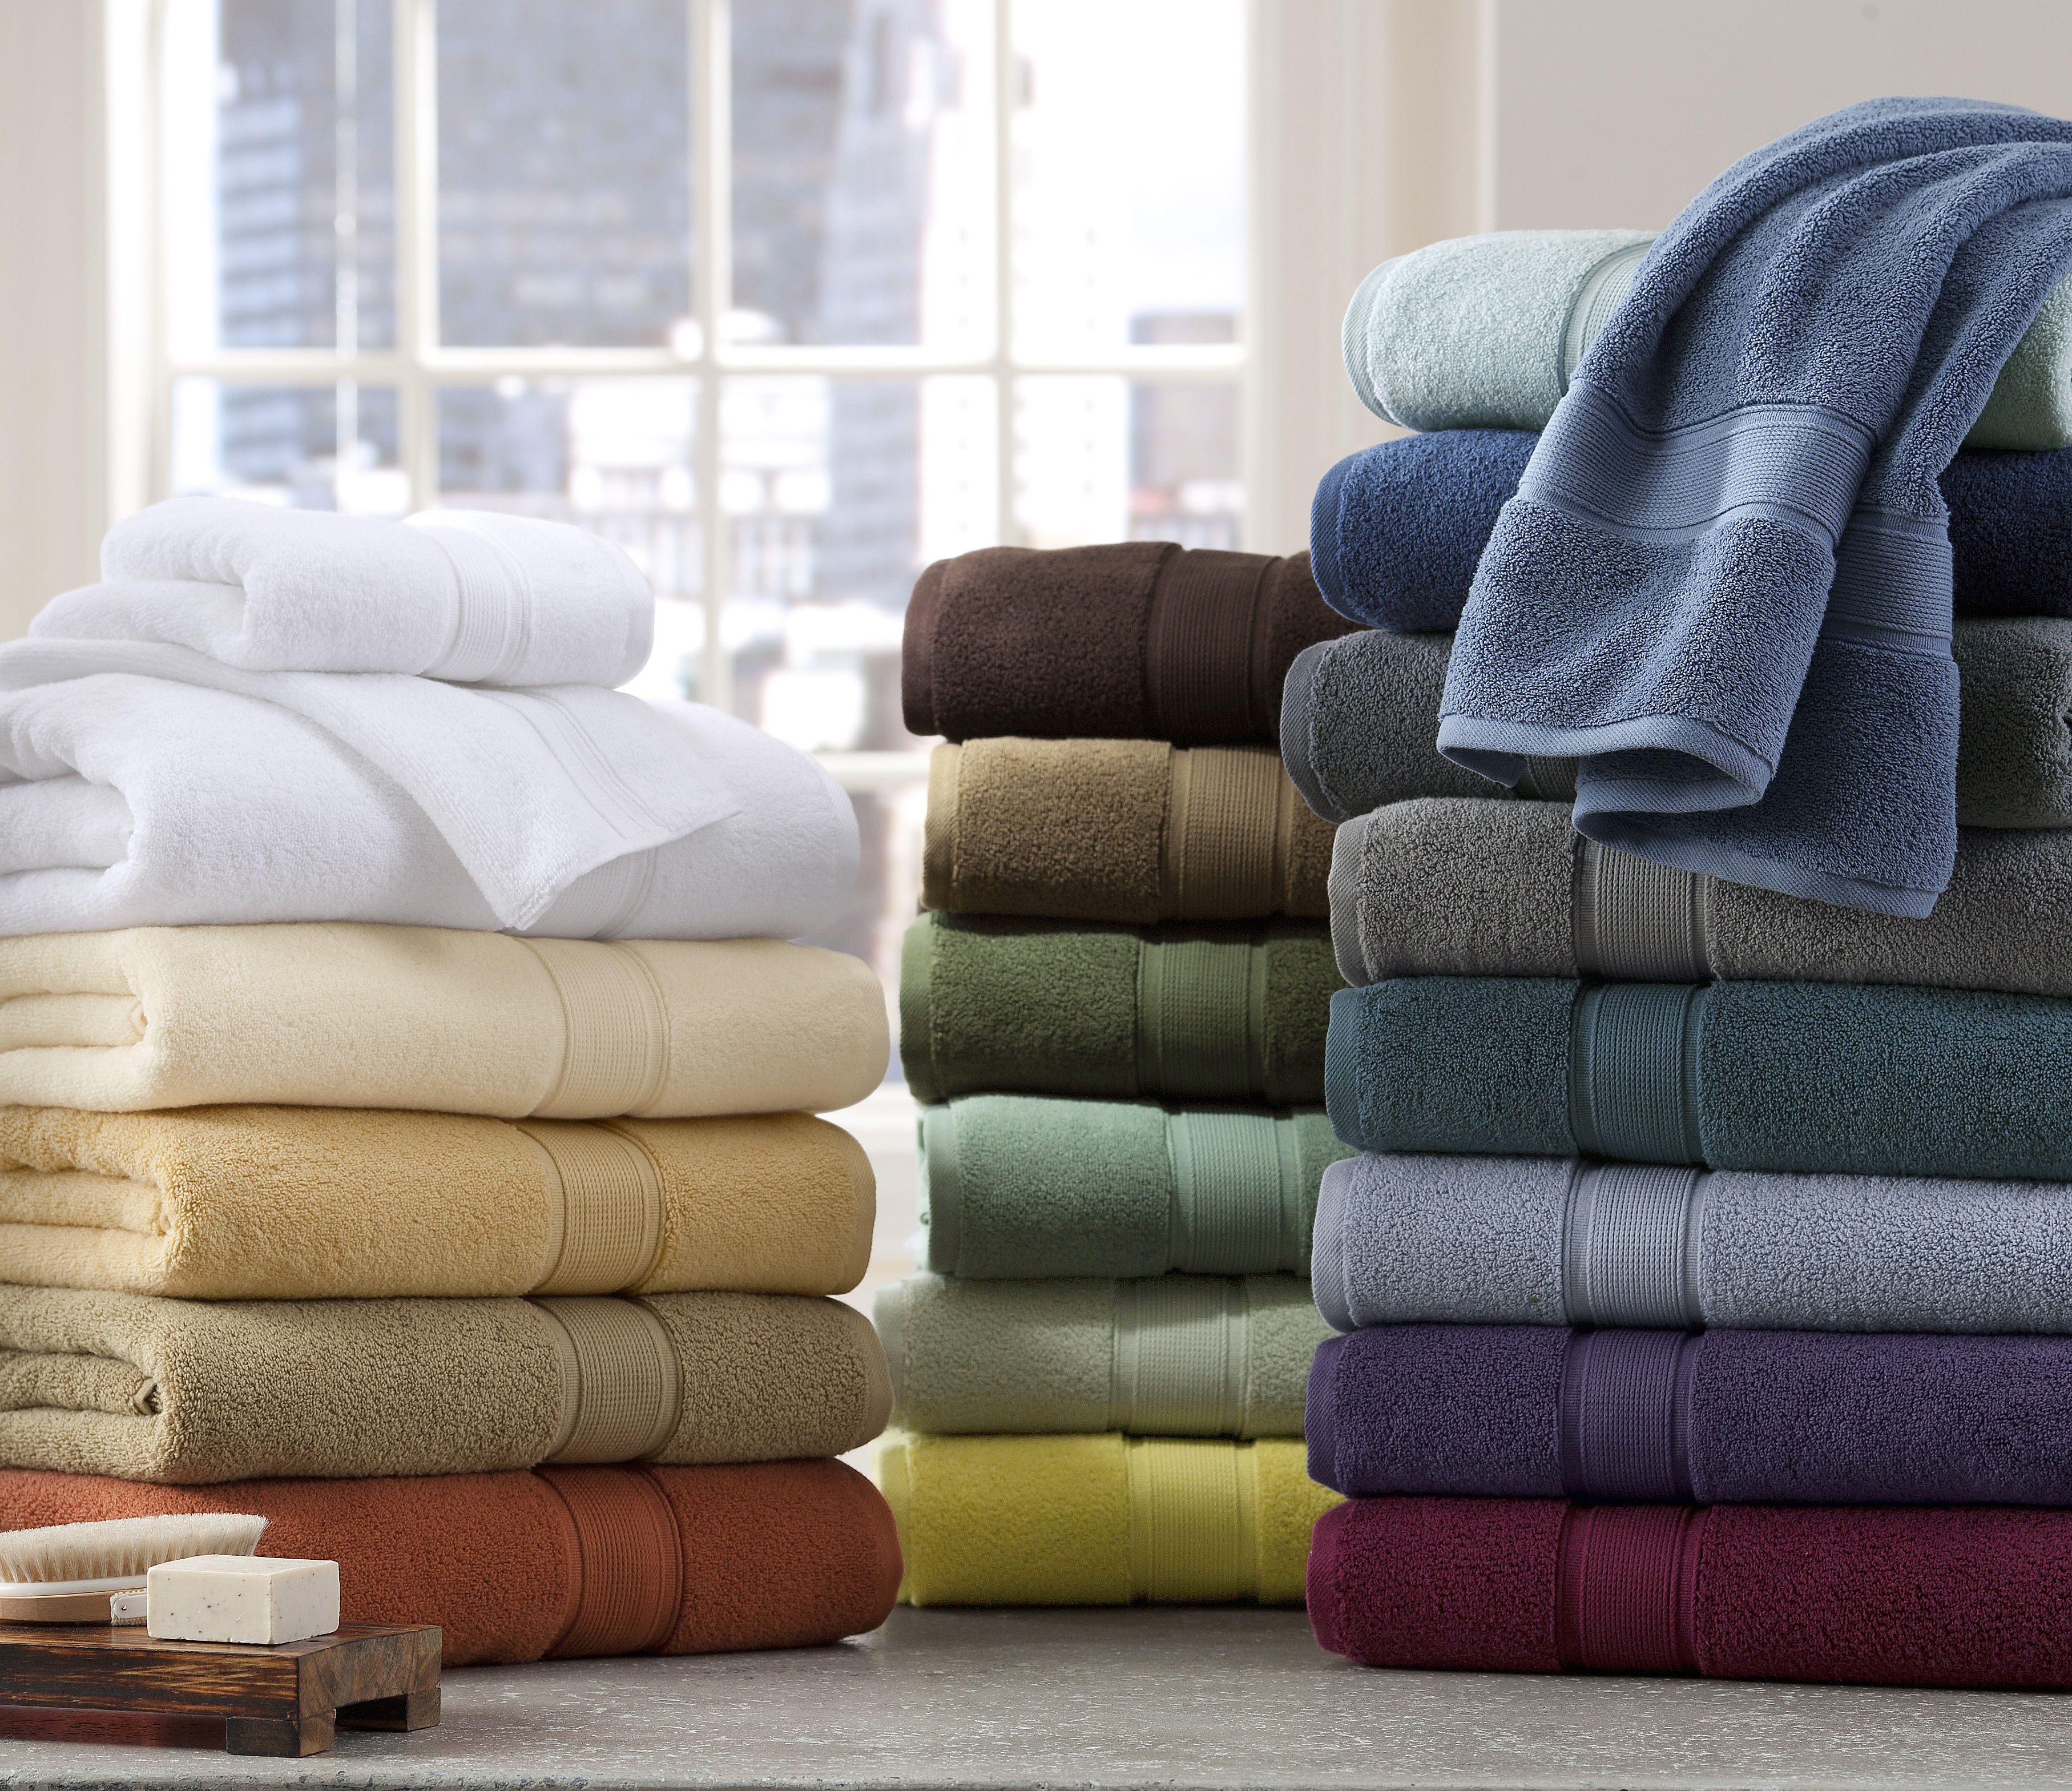 Microfiber Towels Bed Bath And Beyond: These Towels From The Kenneth Cole Reaction Home